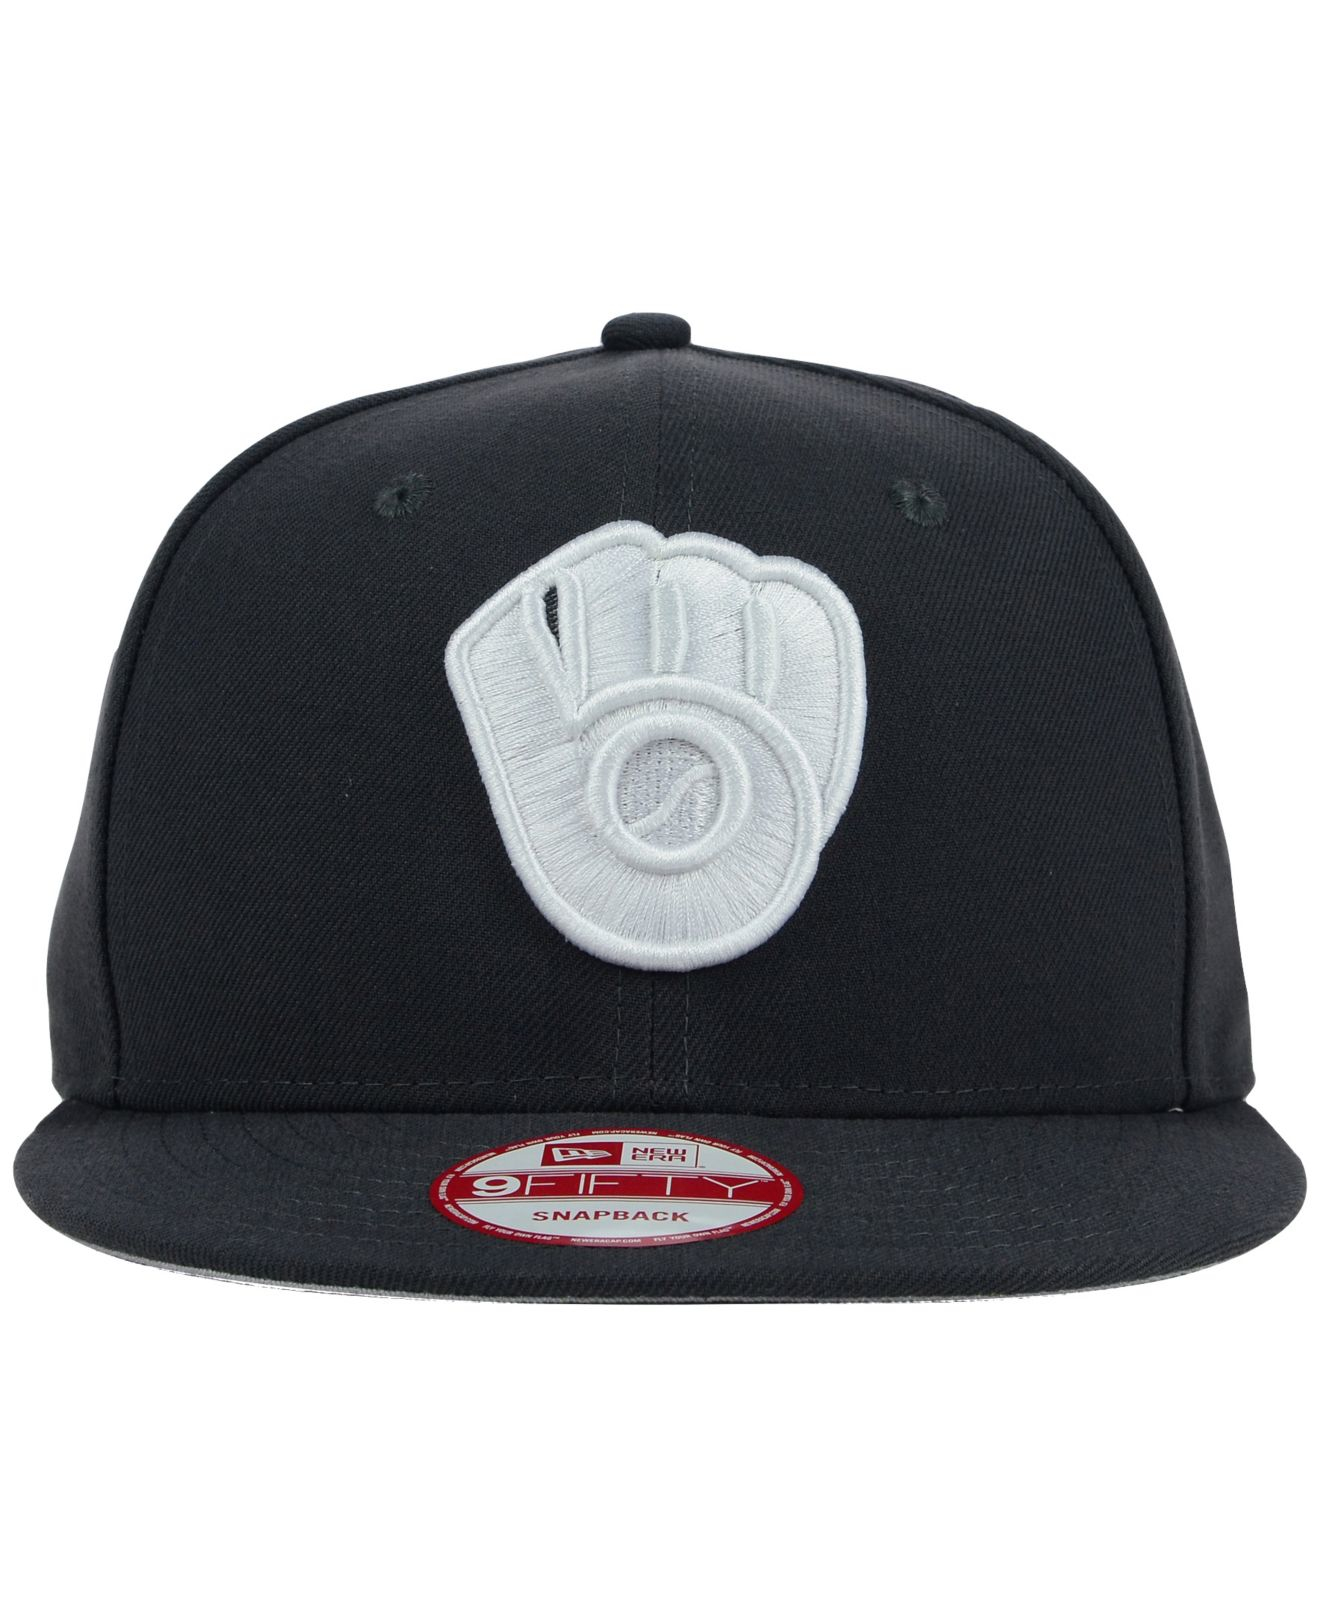 3c2383514f466 ... buy lyst ktz milwaukee brewers c dub 9fifty snapback cap in black for  men efff8 e6b1a